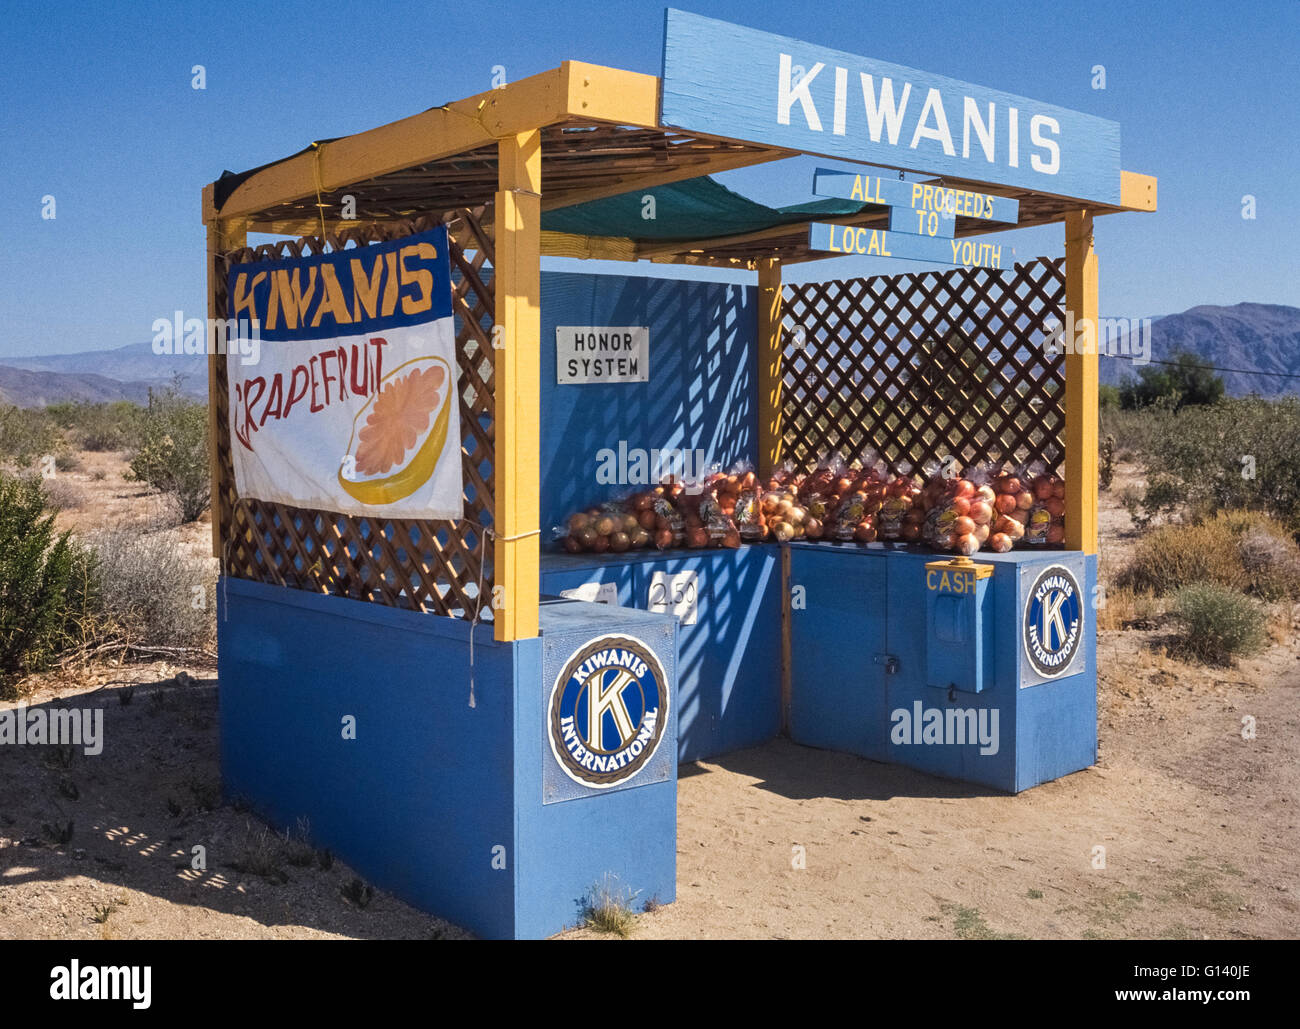 Local youth groups are supported by the sale of grapefruit at an honor stand sponsored by the Kiwanis Club in Borrego - Stock Image